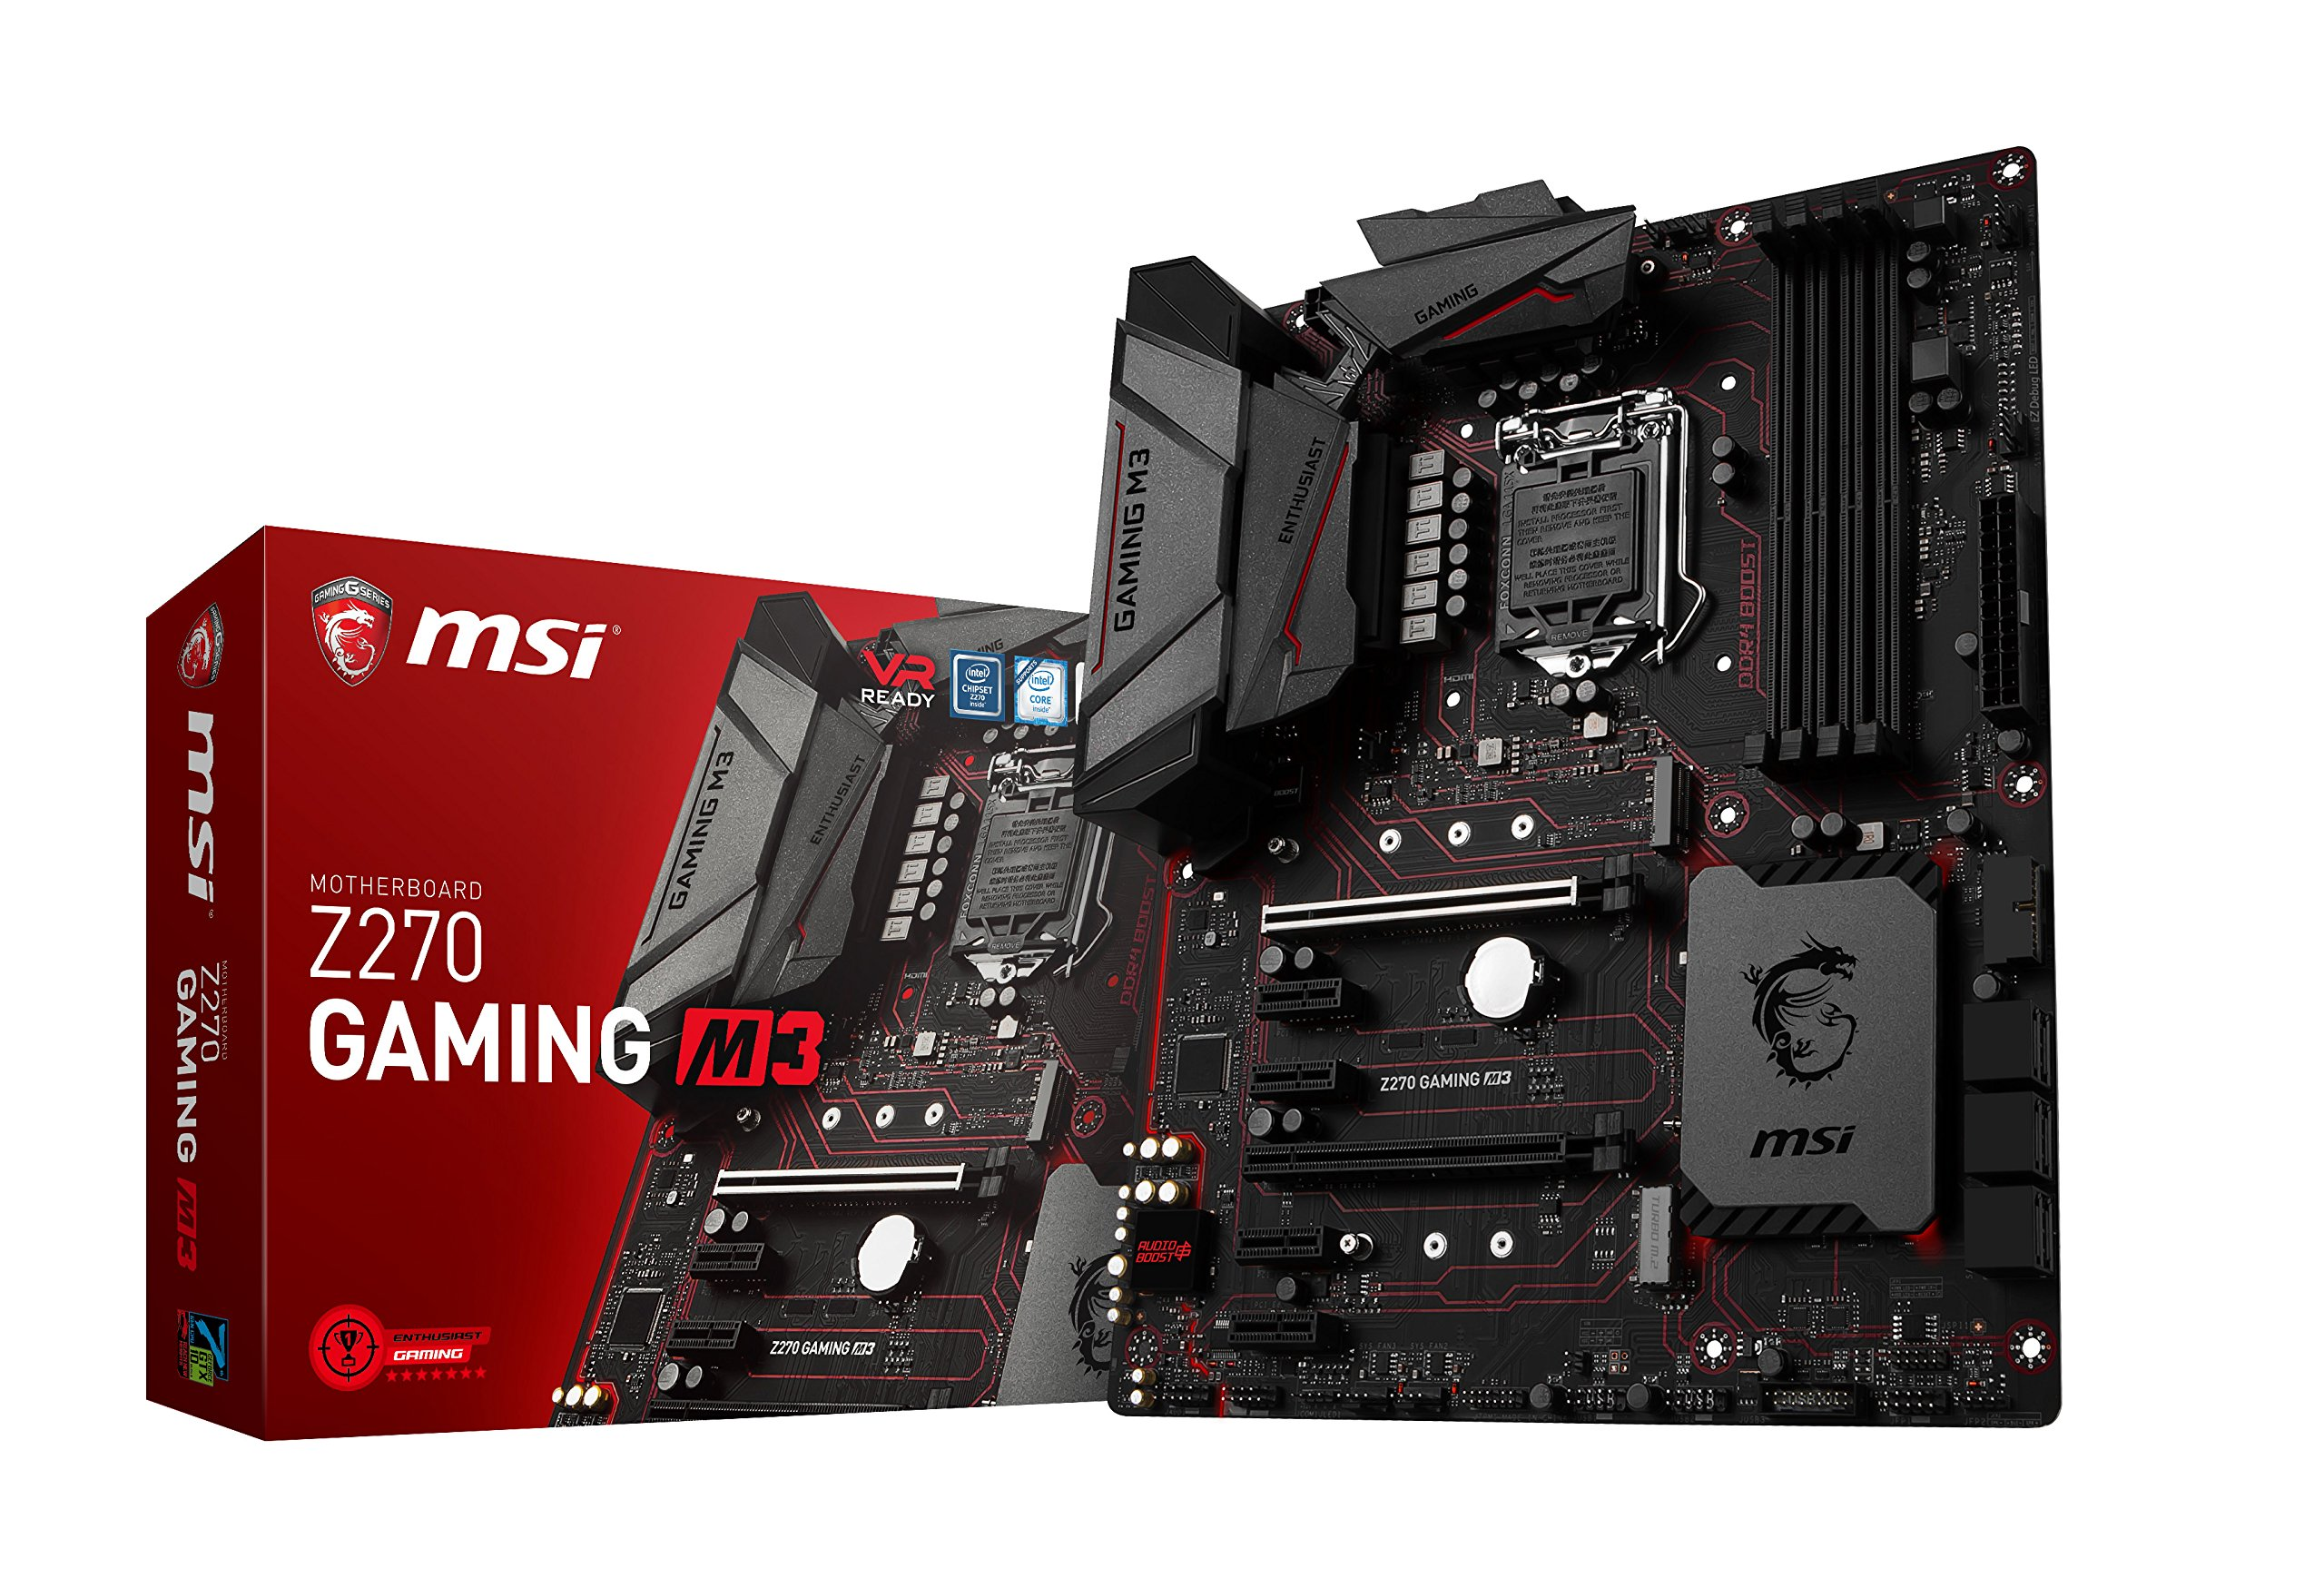 MSI Enthusiastic Gaming Intel Z270 DDR4 VR Ready HDMI USB 3 ATX Motherboard (Z270 GAMING M3) by MSI